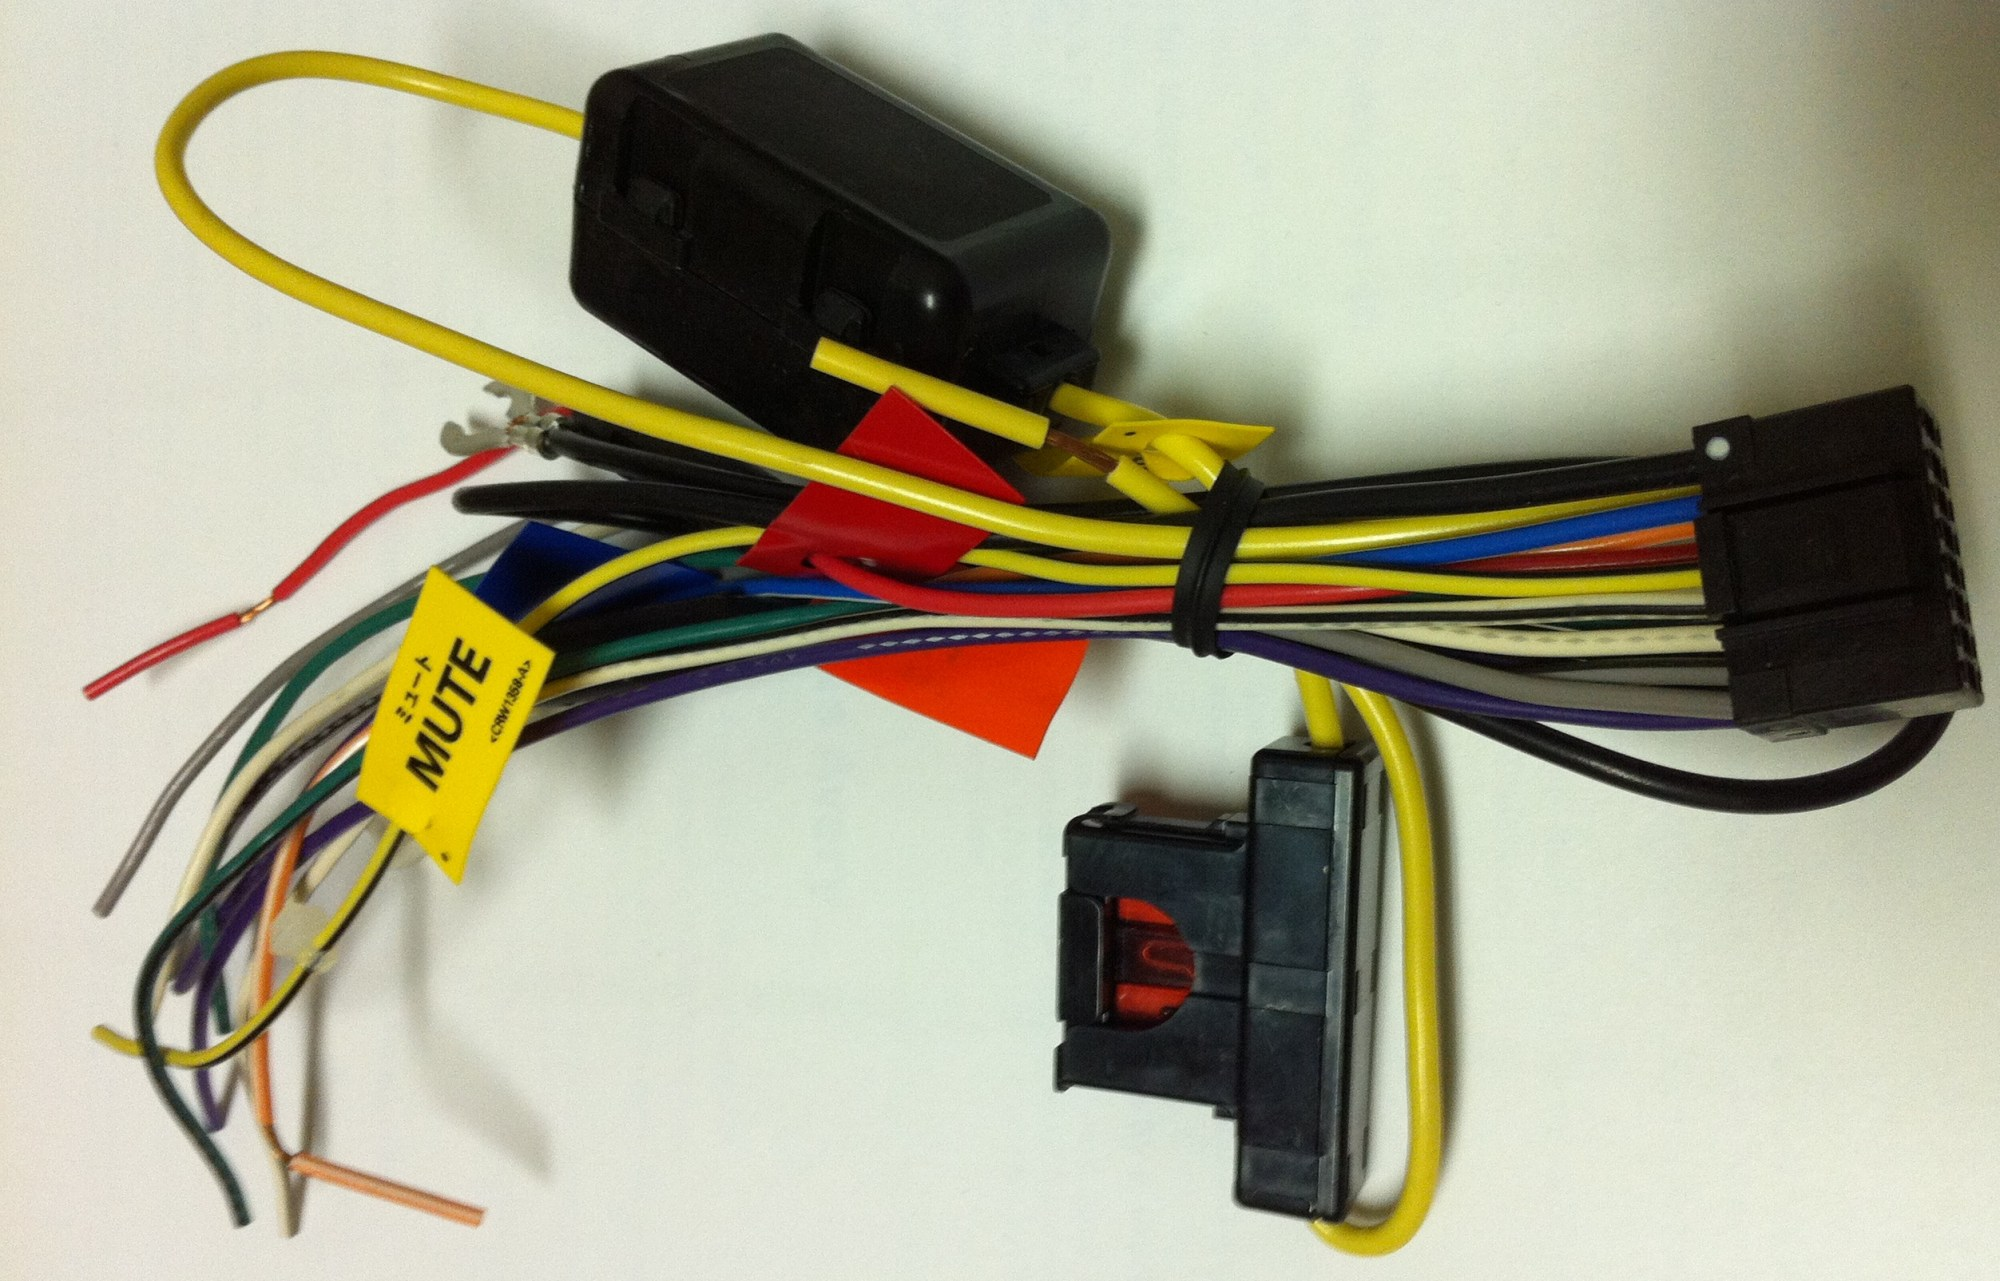 hight resolution of car stereo pioneer deh 1900mp wiring diagram get free wire harness pioneer car stereo wiring harness for pioneer avh p3300bt